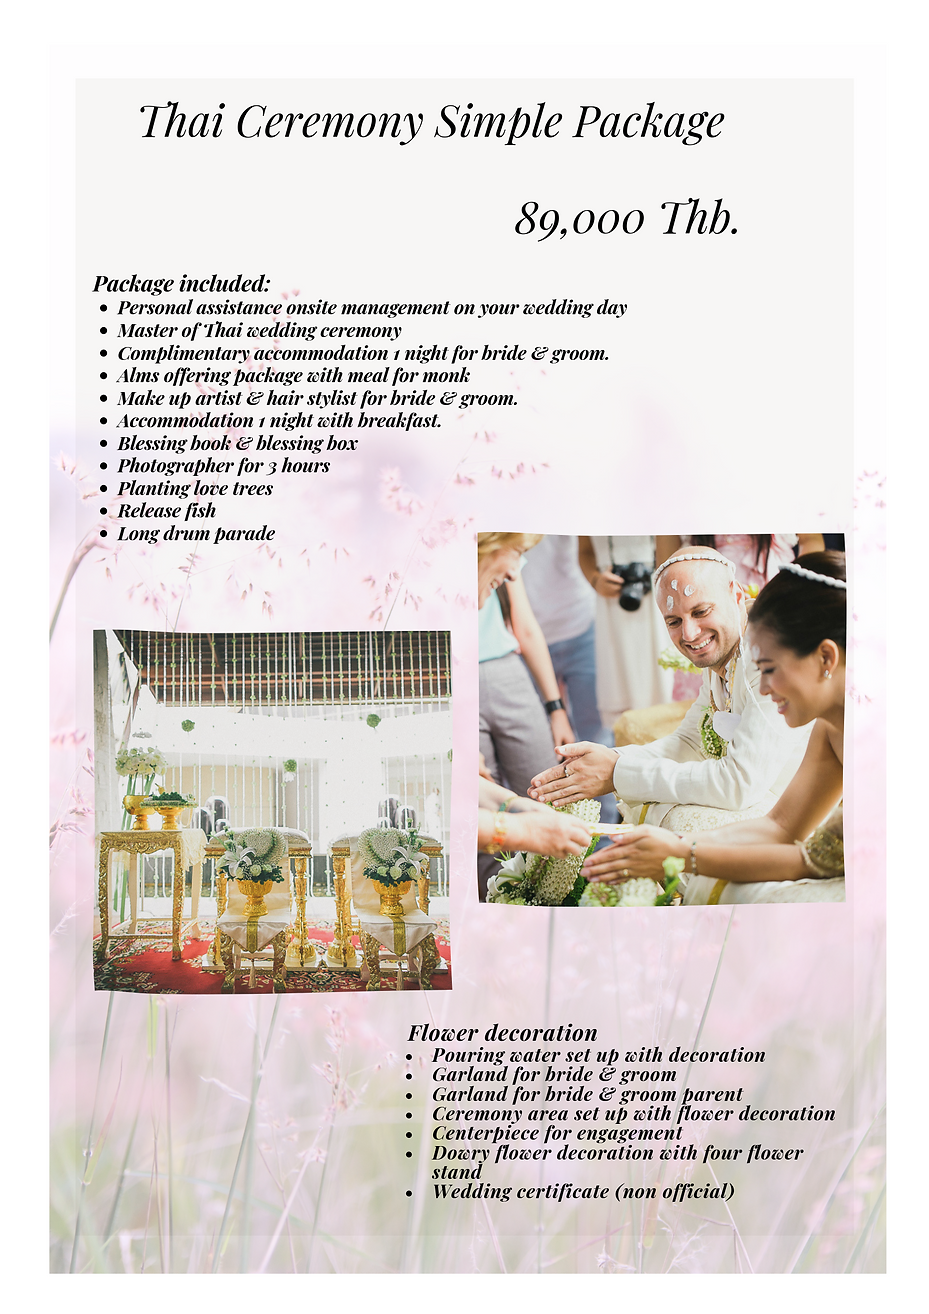 Simple package wedding 89,000 (1).png